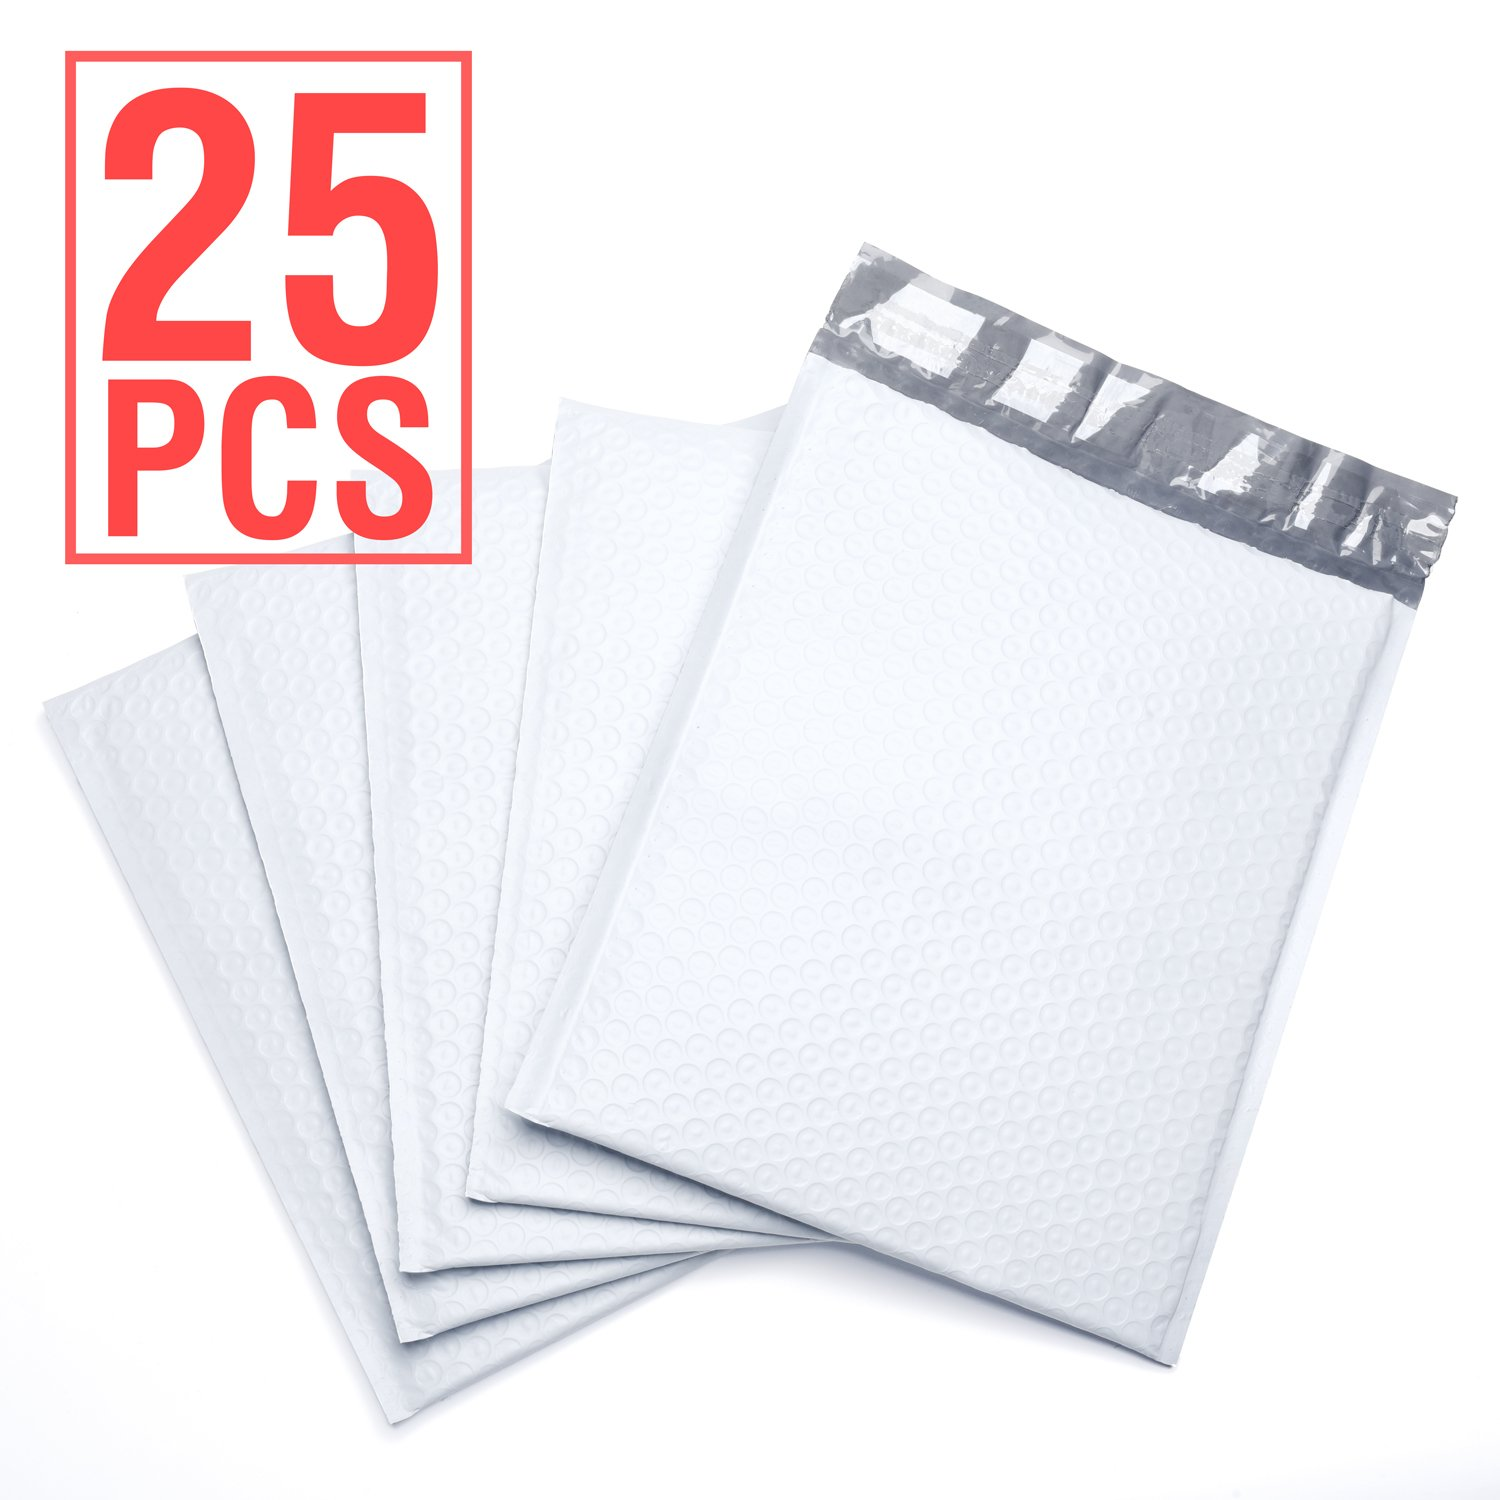 FU GLOBAL Padded Envelopes #2 Poly Bubble Mailers 8.5x12 Inch Bubble Envelopes White 25pcs